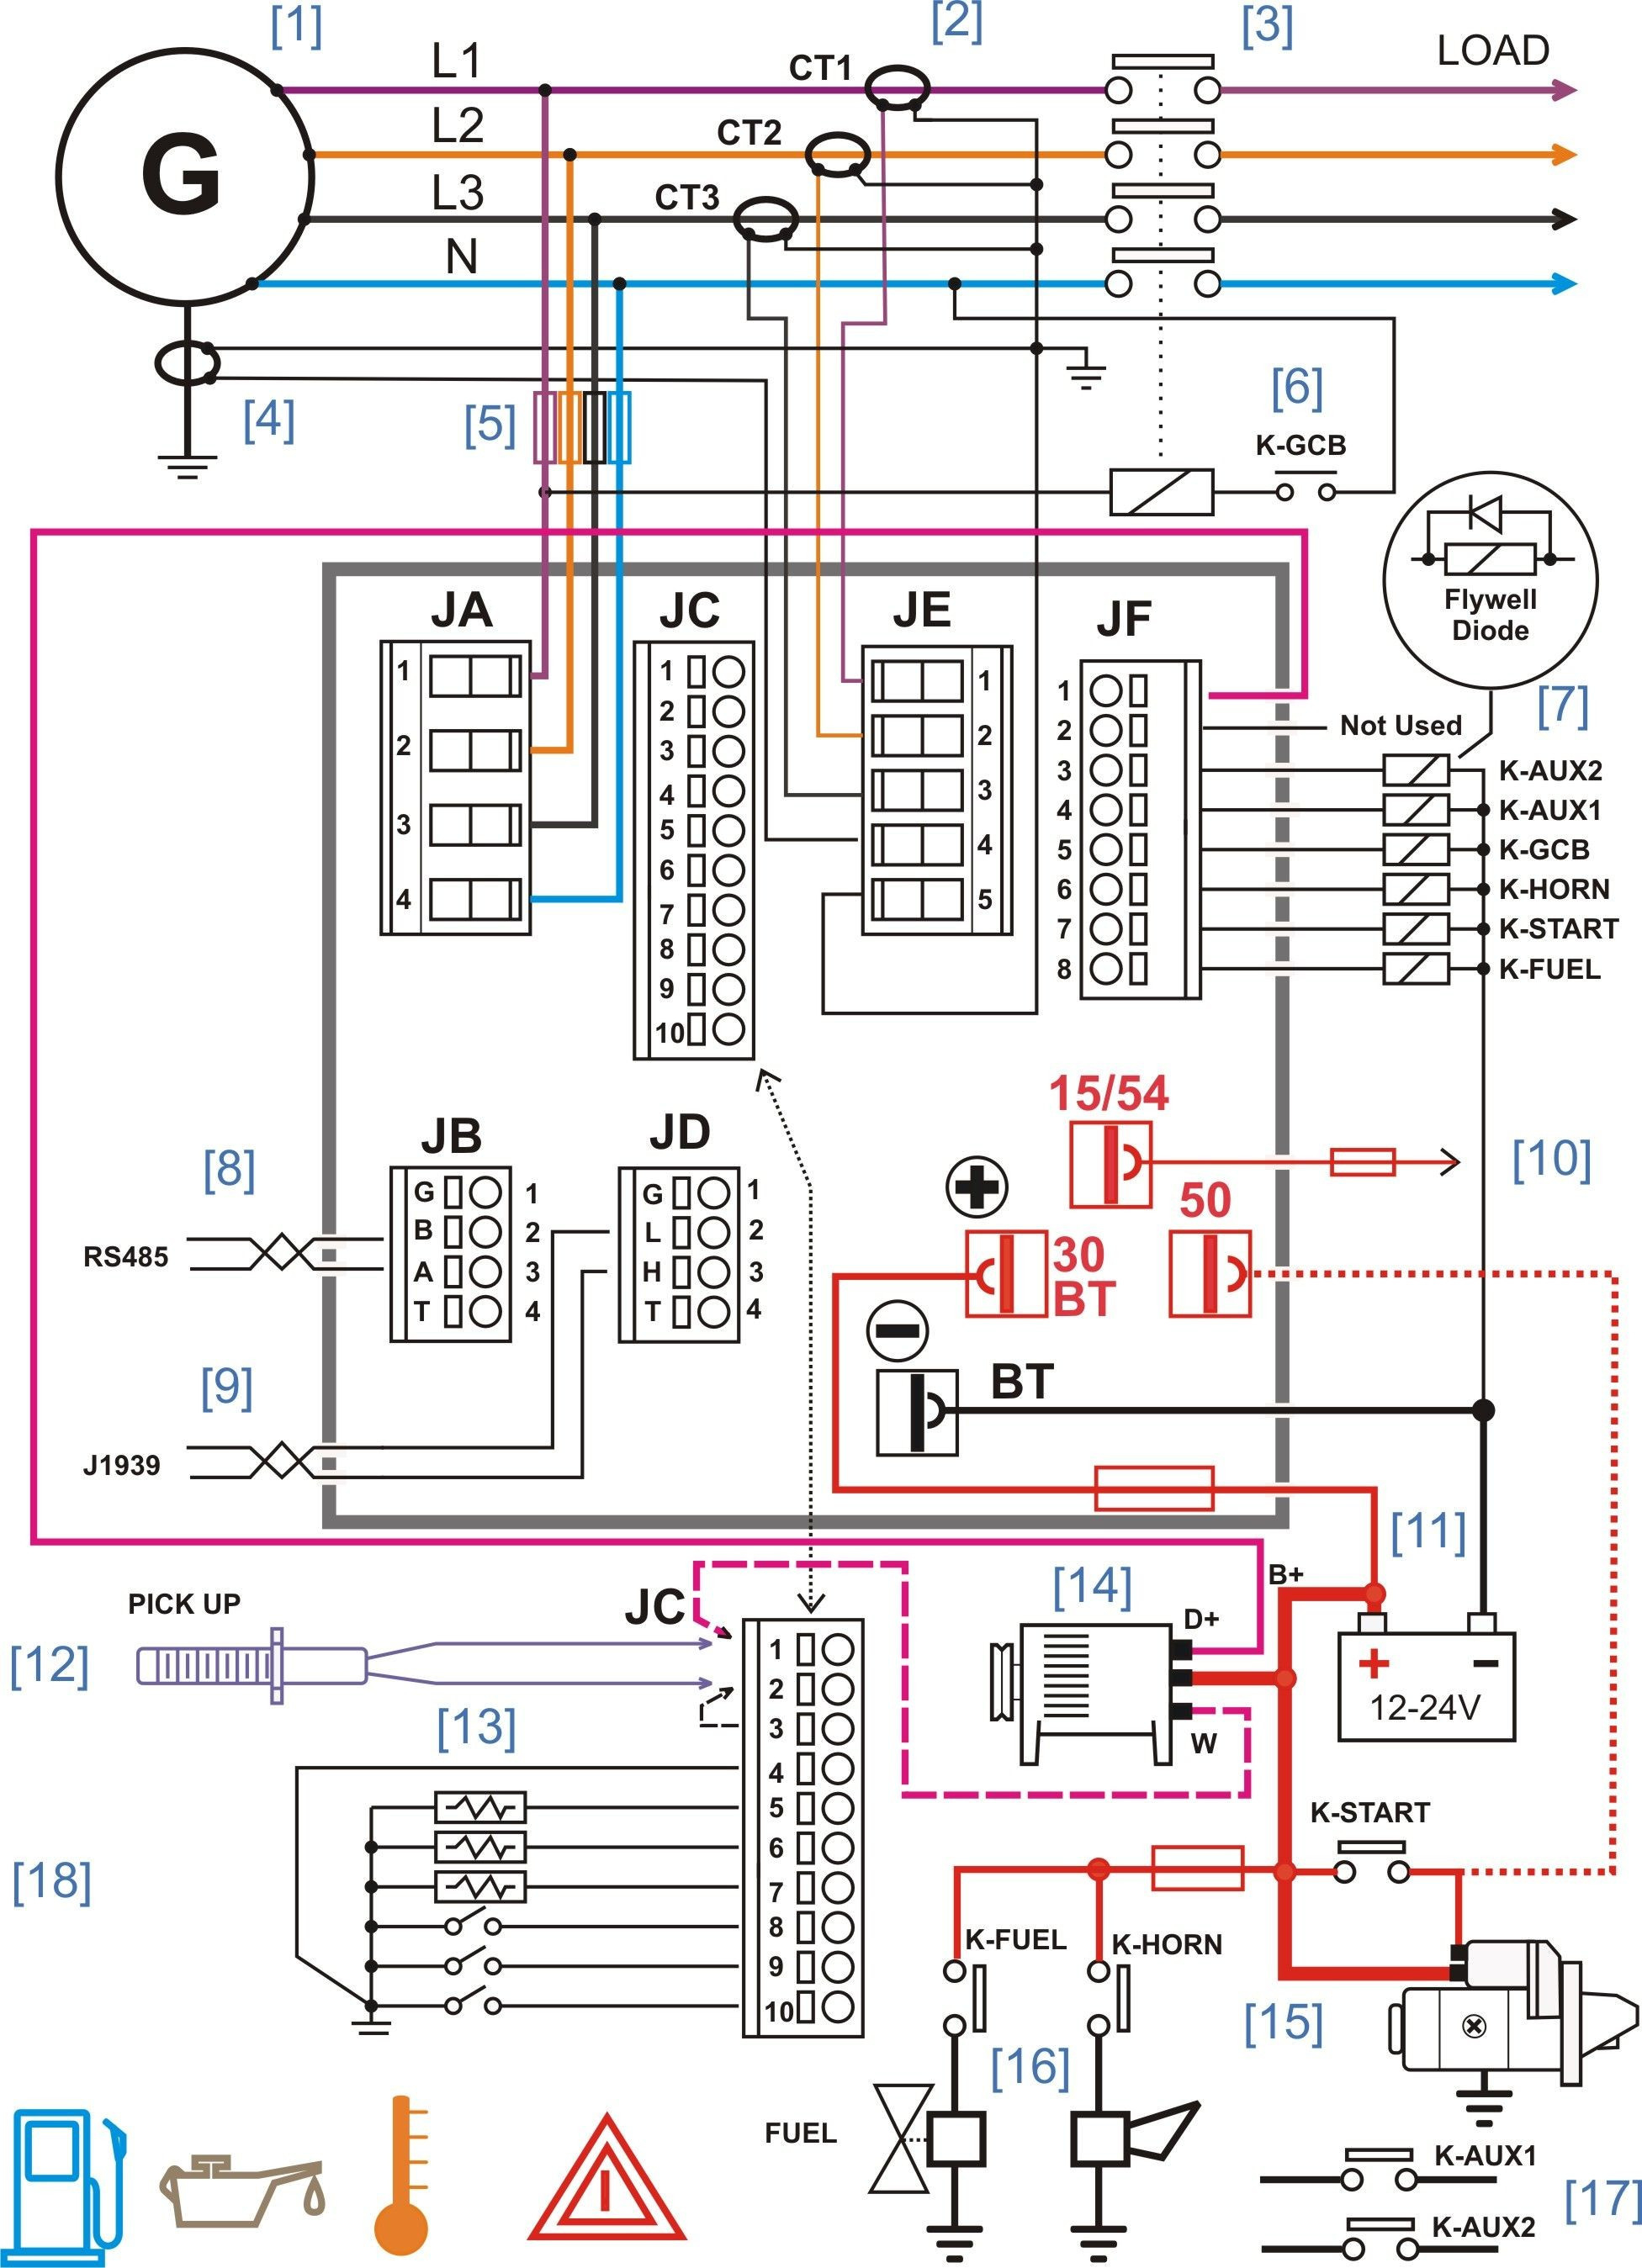 electrical wiring diagram tool wiring diagrams schematicelectrical house wiring diagram software sample electrical wiring diagram dictionary electrical house wiring diagram software house